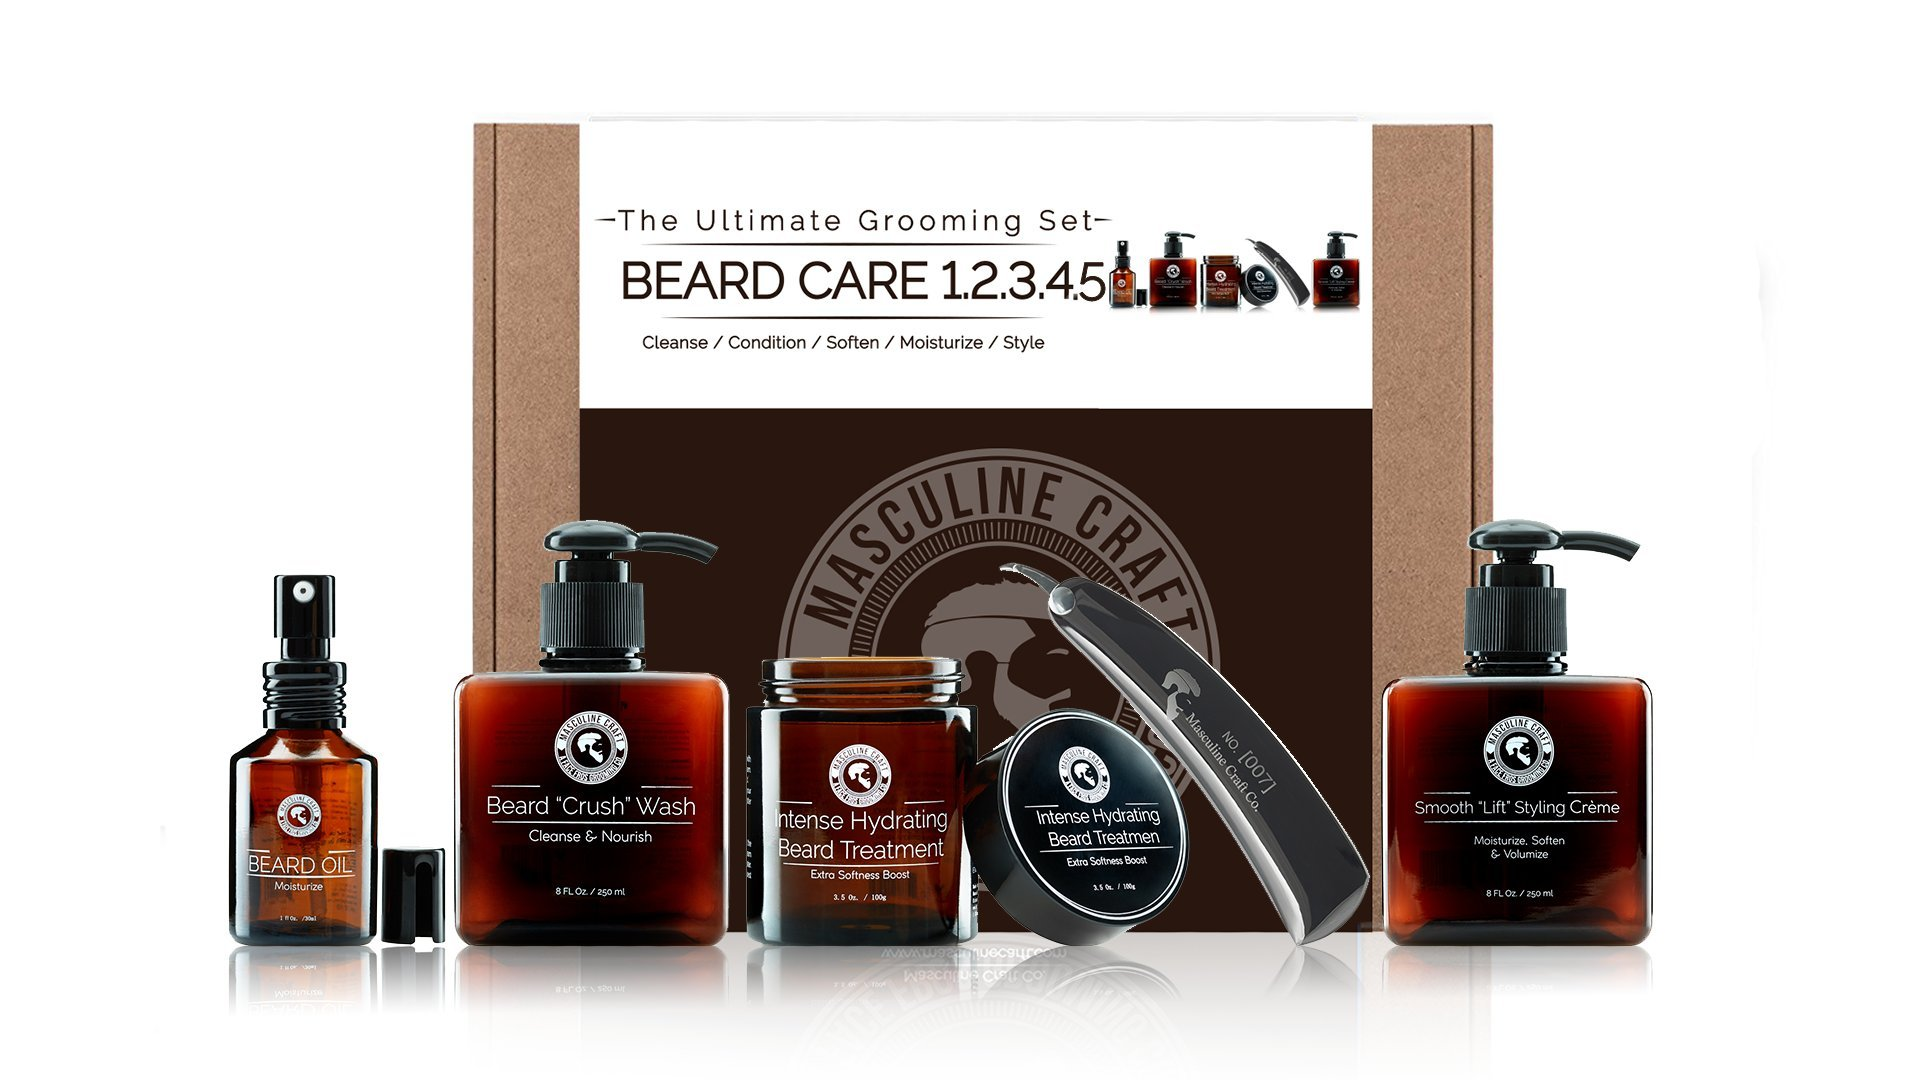 Masculine Craft Mens Beard Grooming Kit | Scented Beard Care Kit | Beard Wash Shampoo + Beard Softener Hydration Treatment + Beard Conditioner + Beard Oil Treatment + Stainless Steel Folding Beard Com